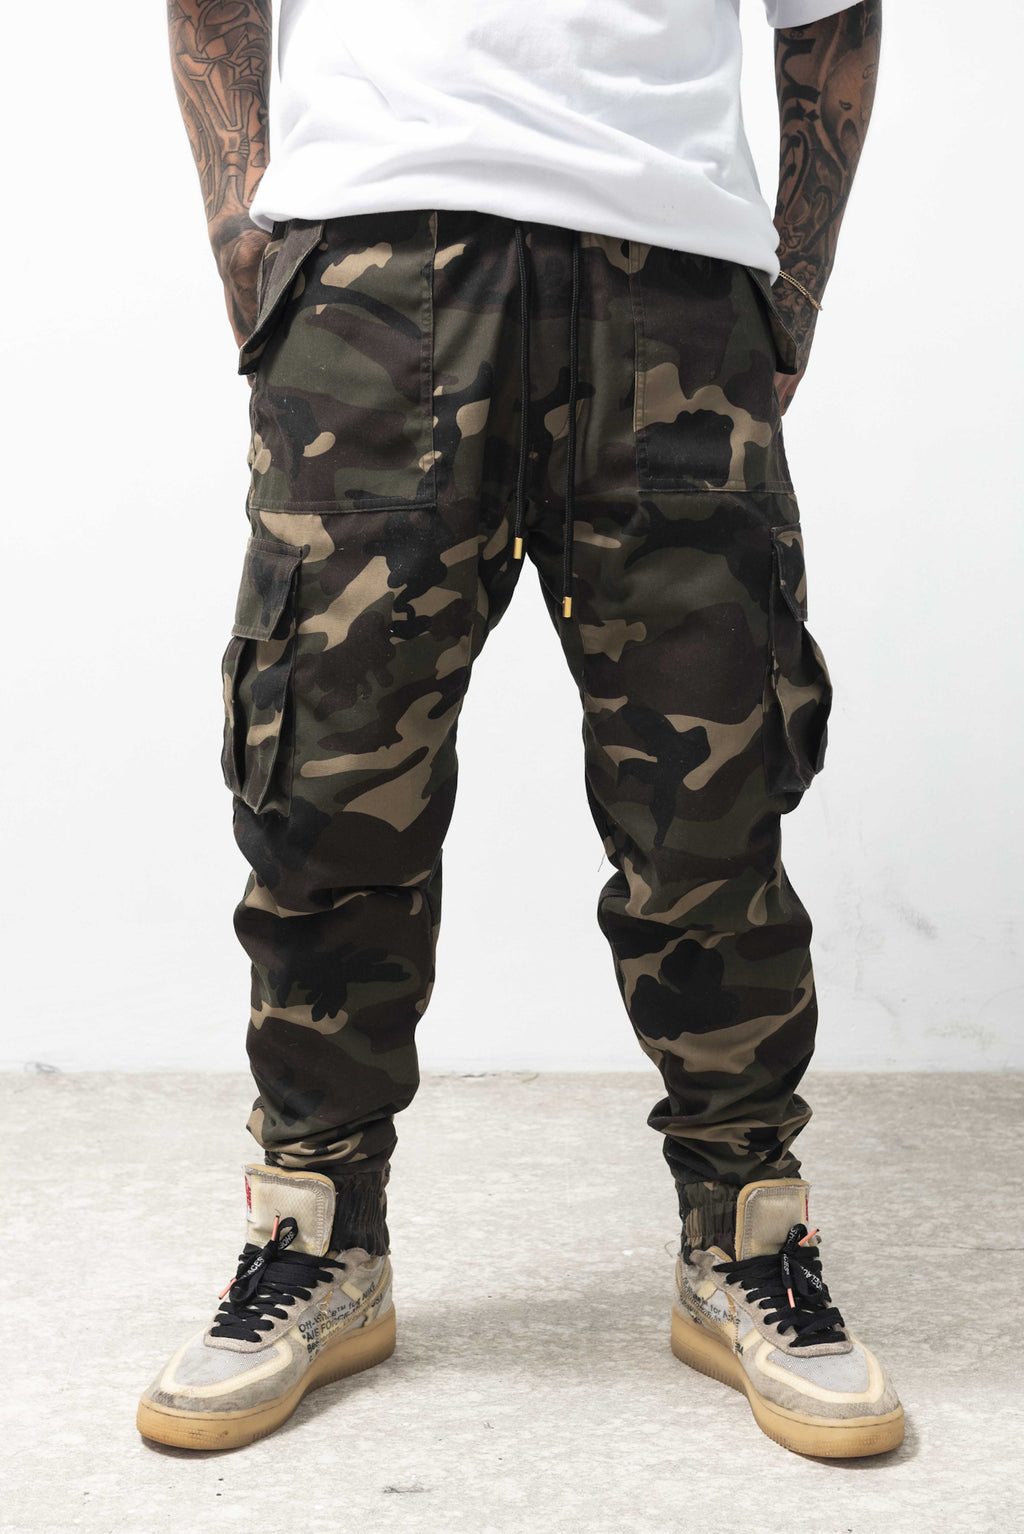 6 POCKETS CAMOU CARGO PANTS - GREEN